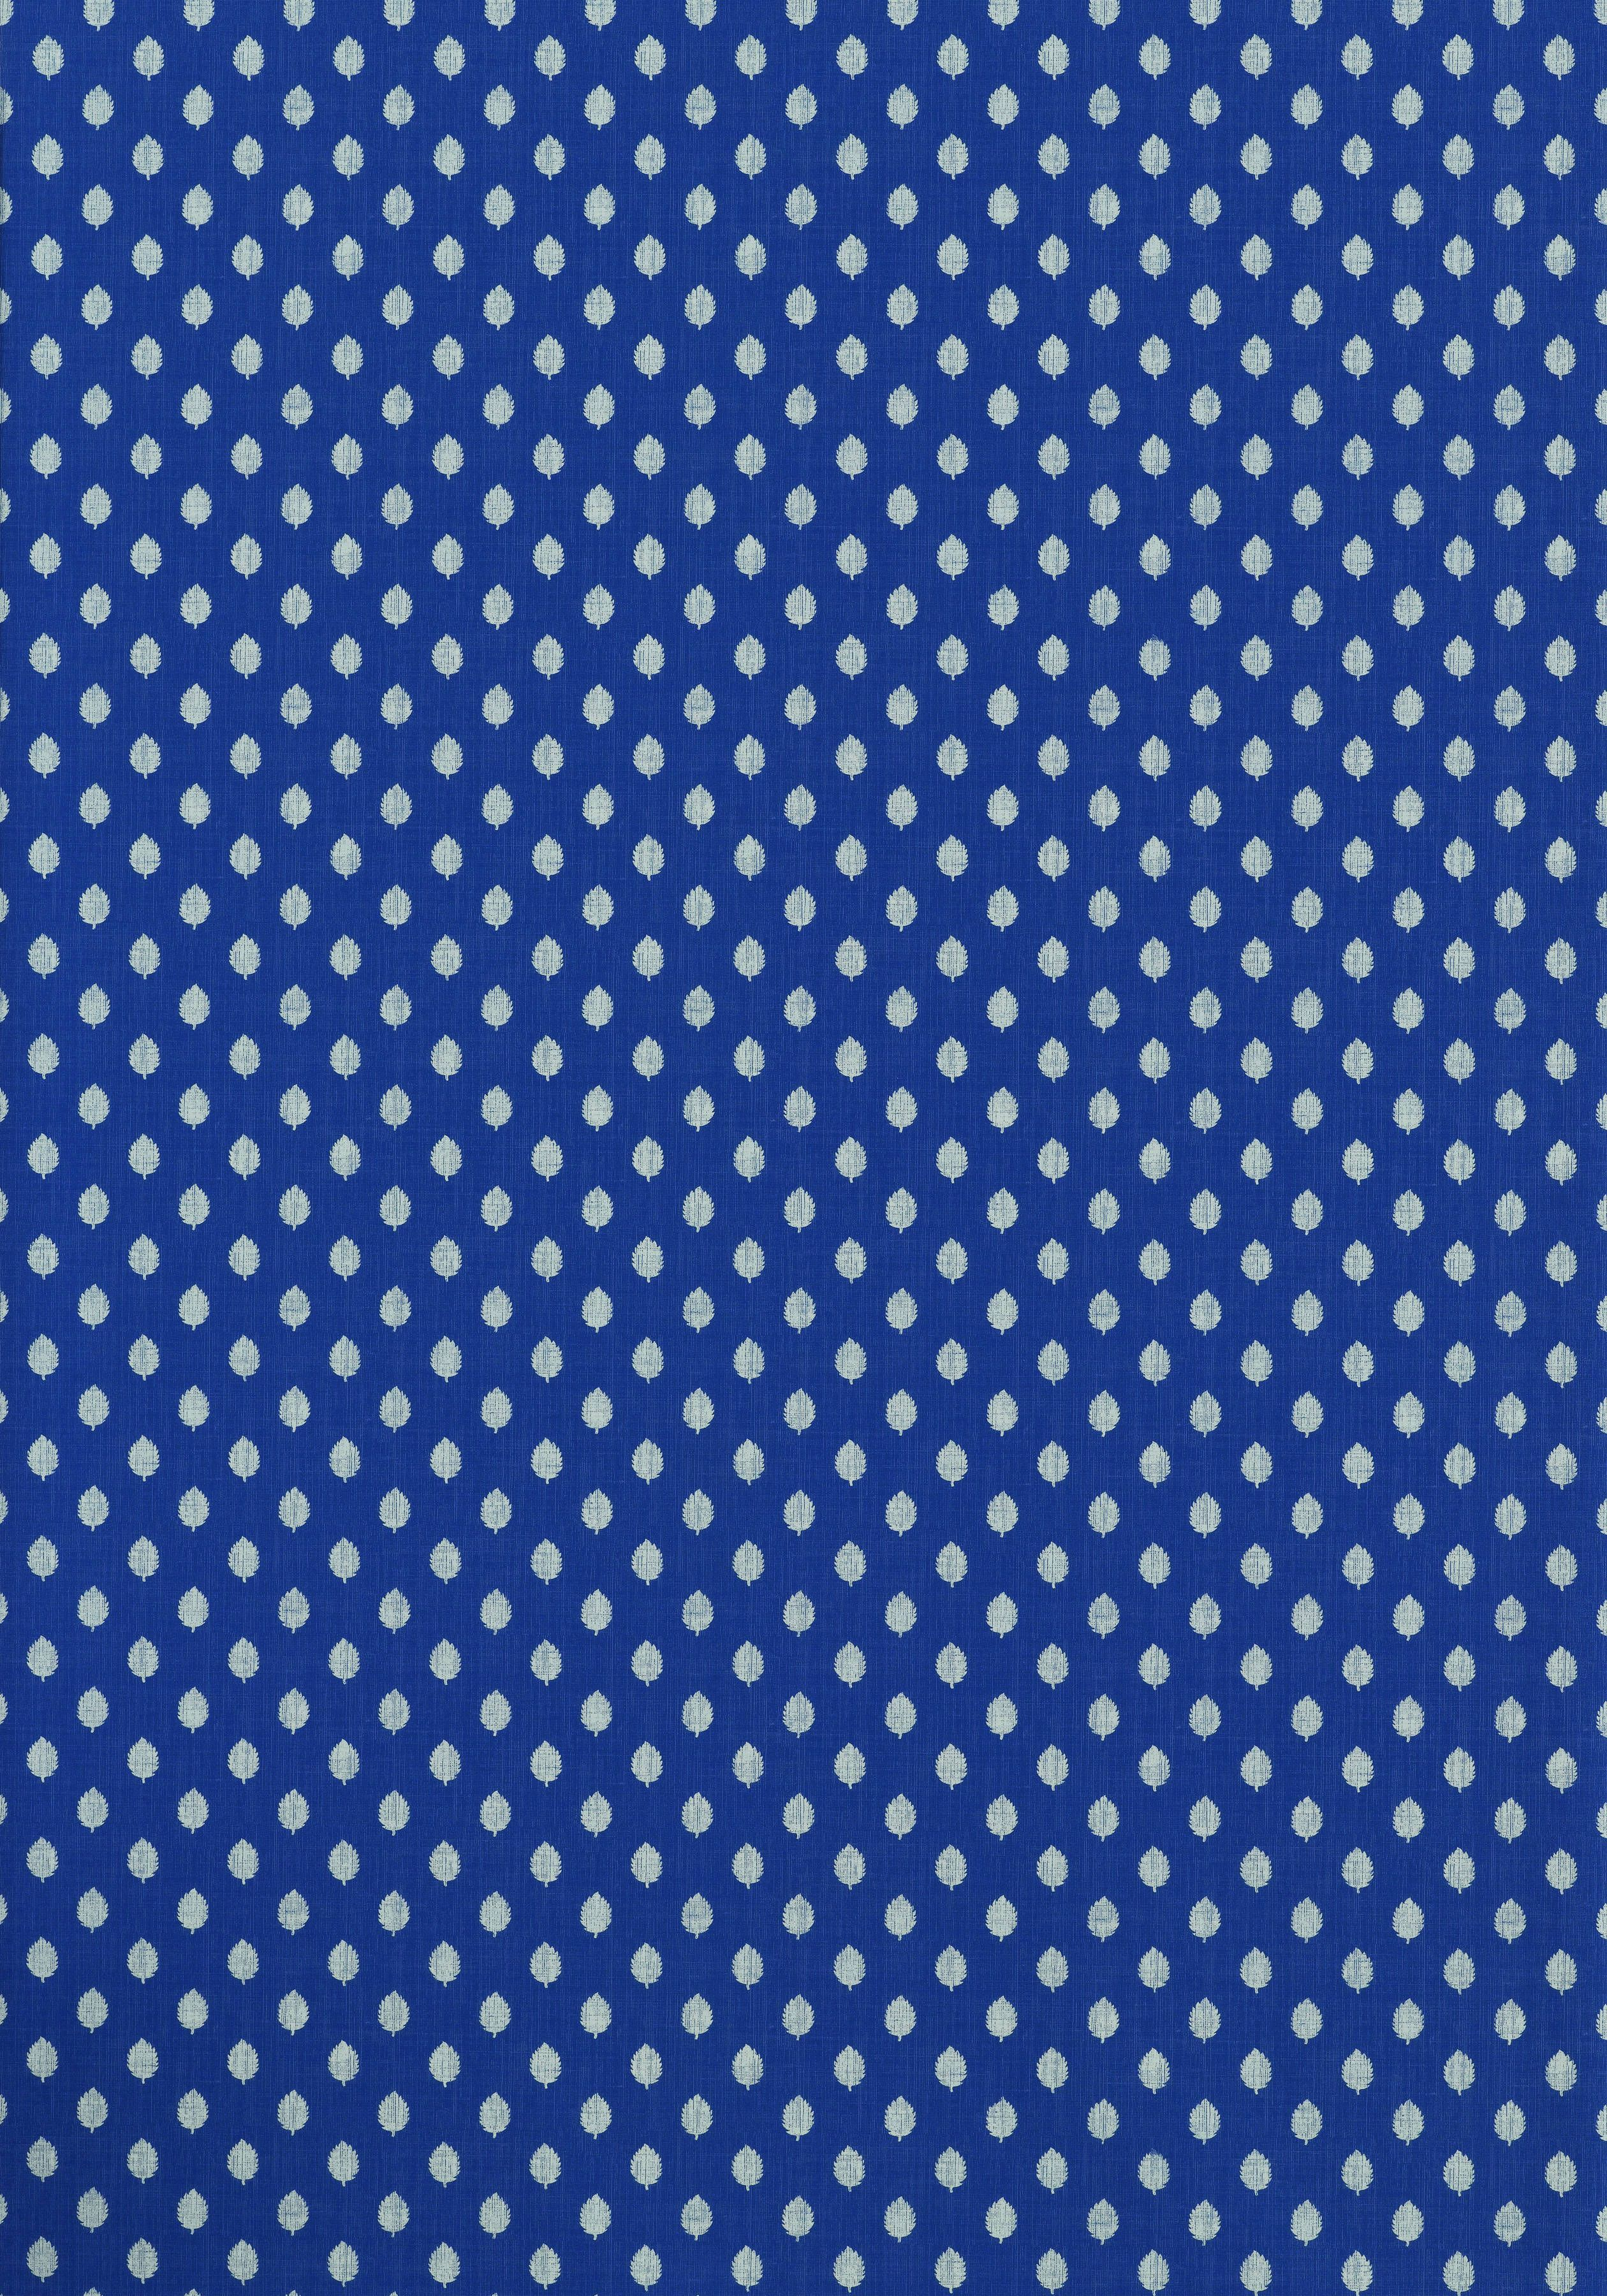 LITTLE LEAF, Blue, T9165, Collection Avalon from Thibaut